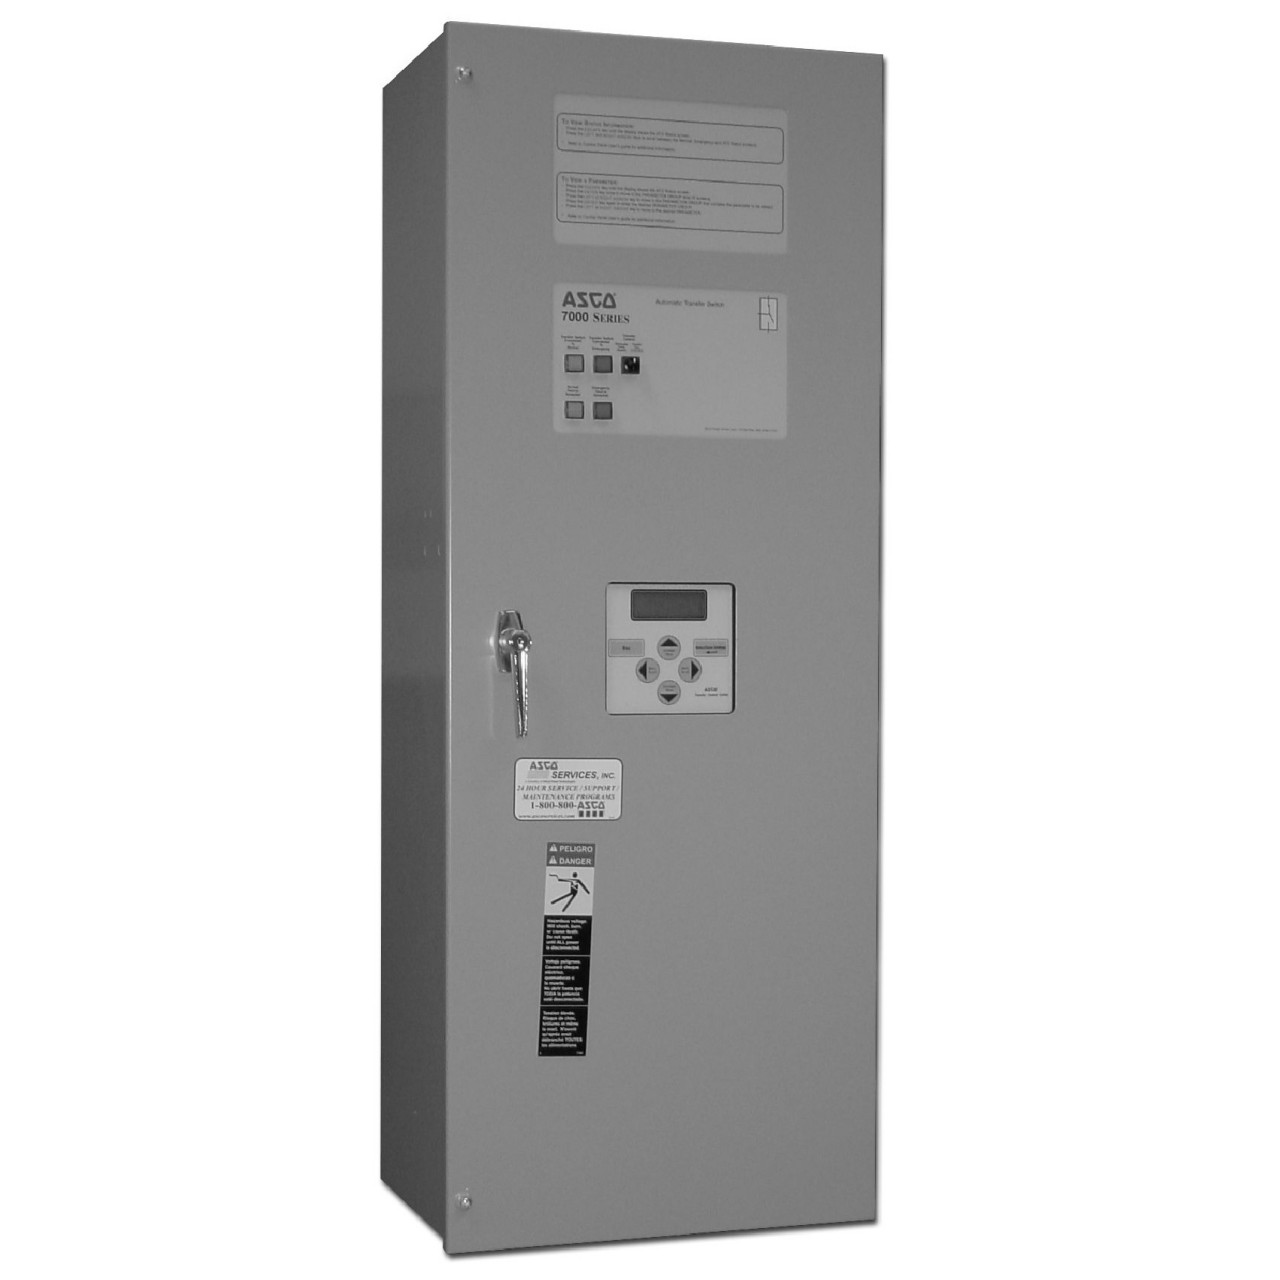 Asco 7000 Auto Transfer Switch (1Ph, 100A)